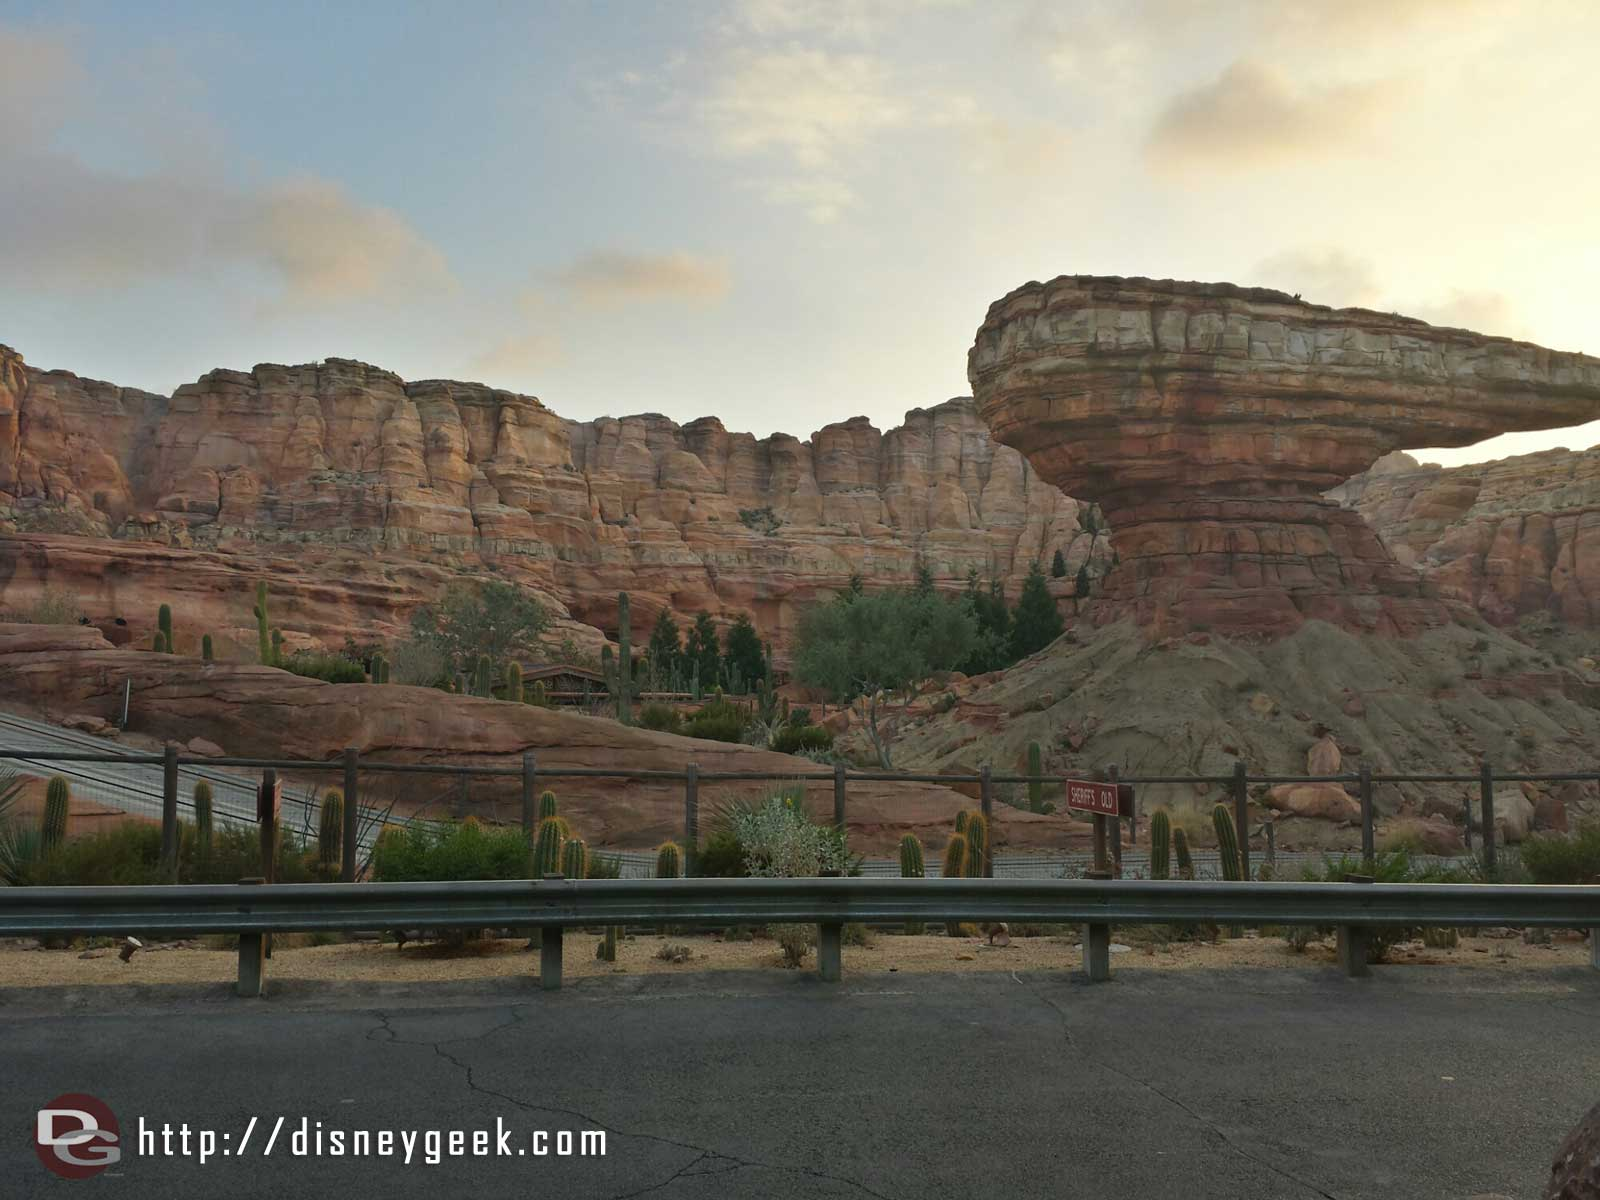 My dinner view this evening, Ornament Valley #CarsLand